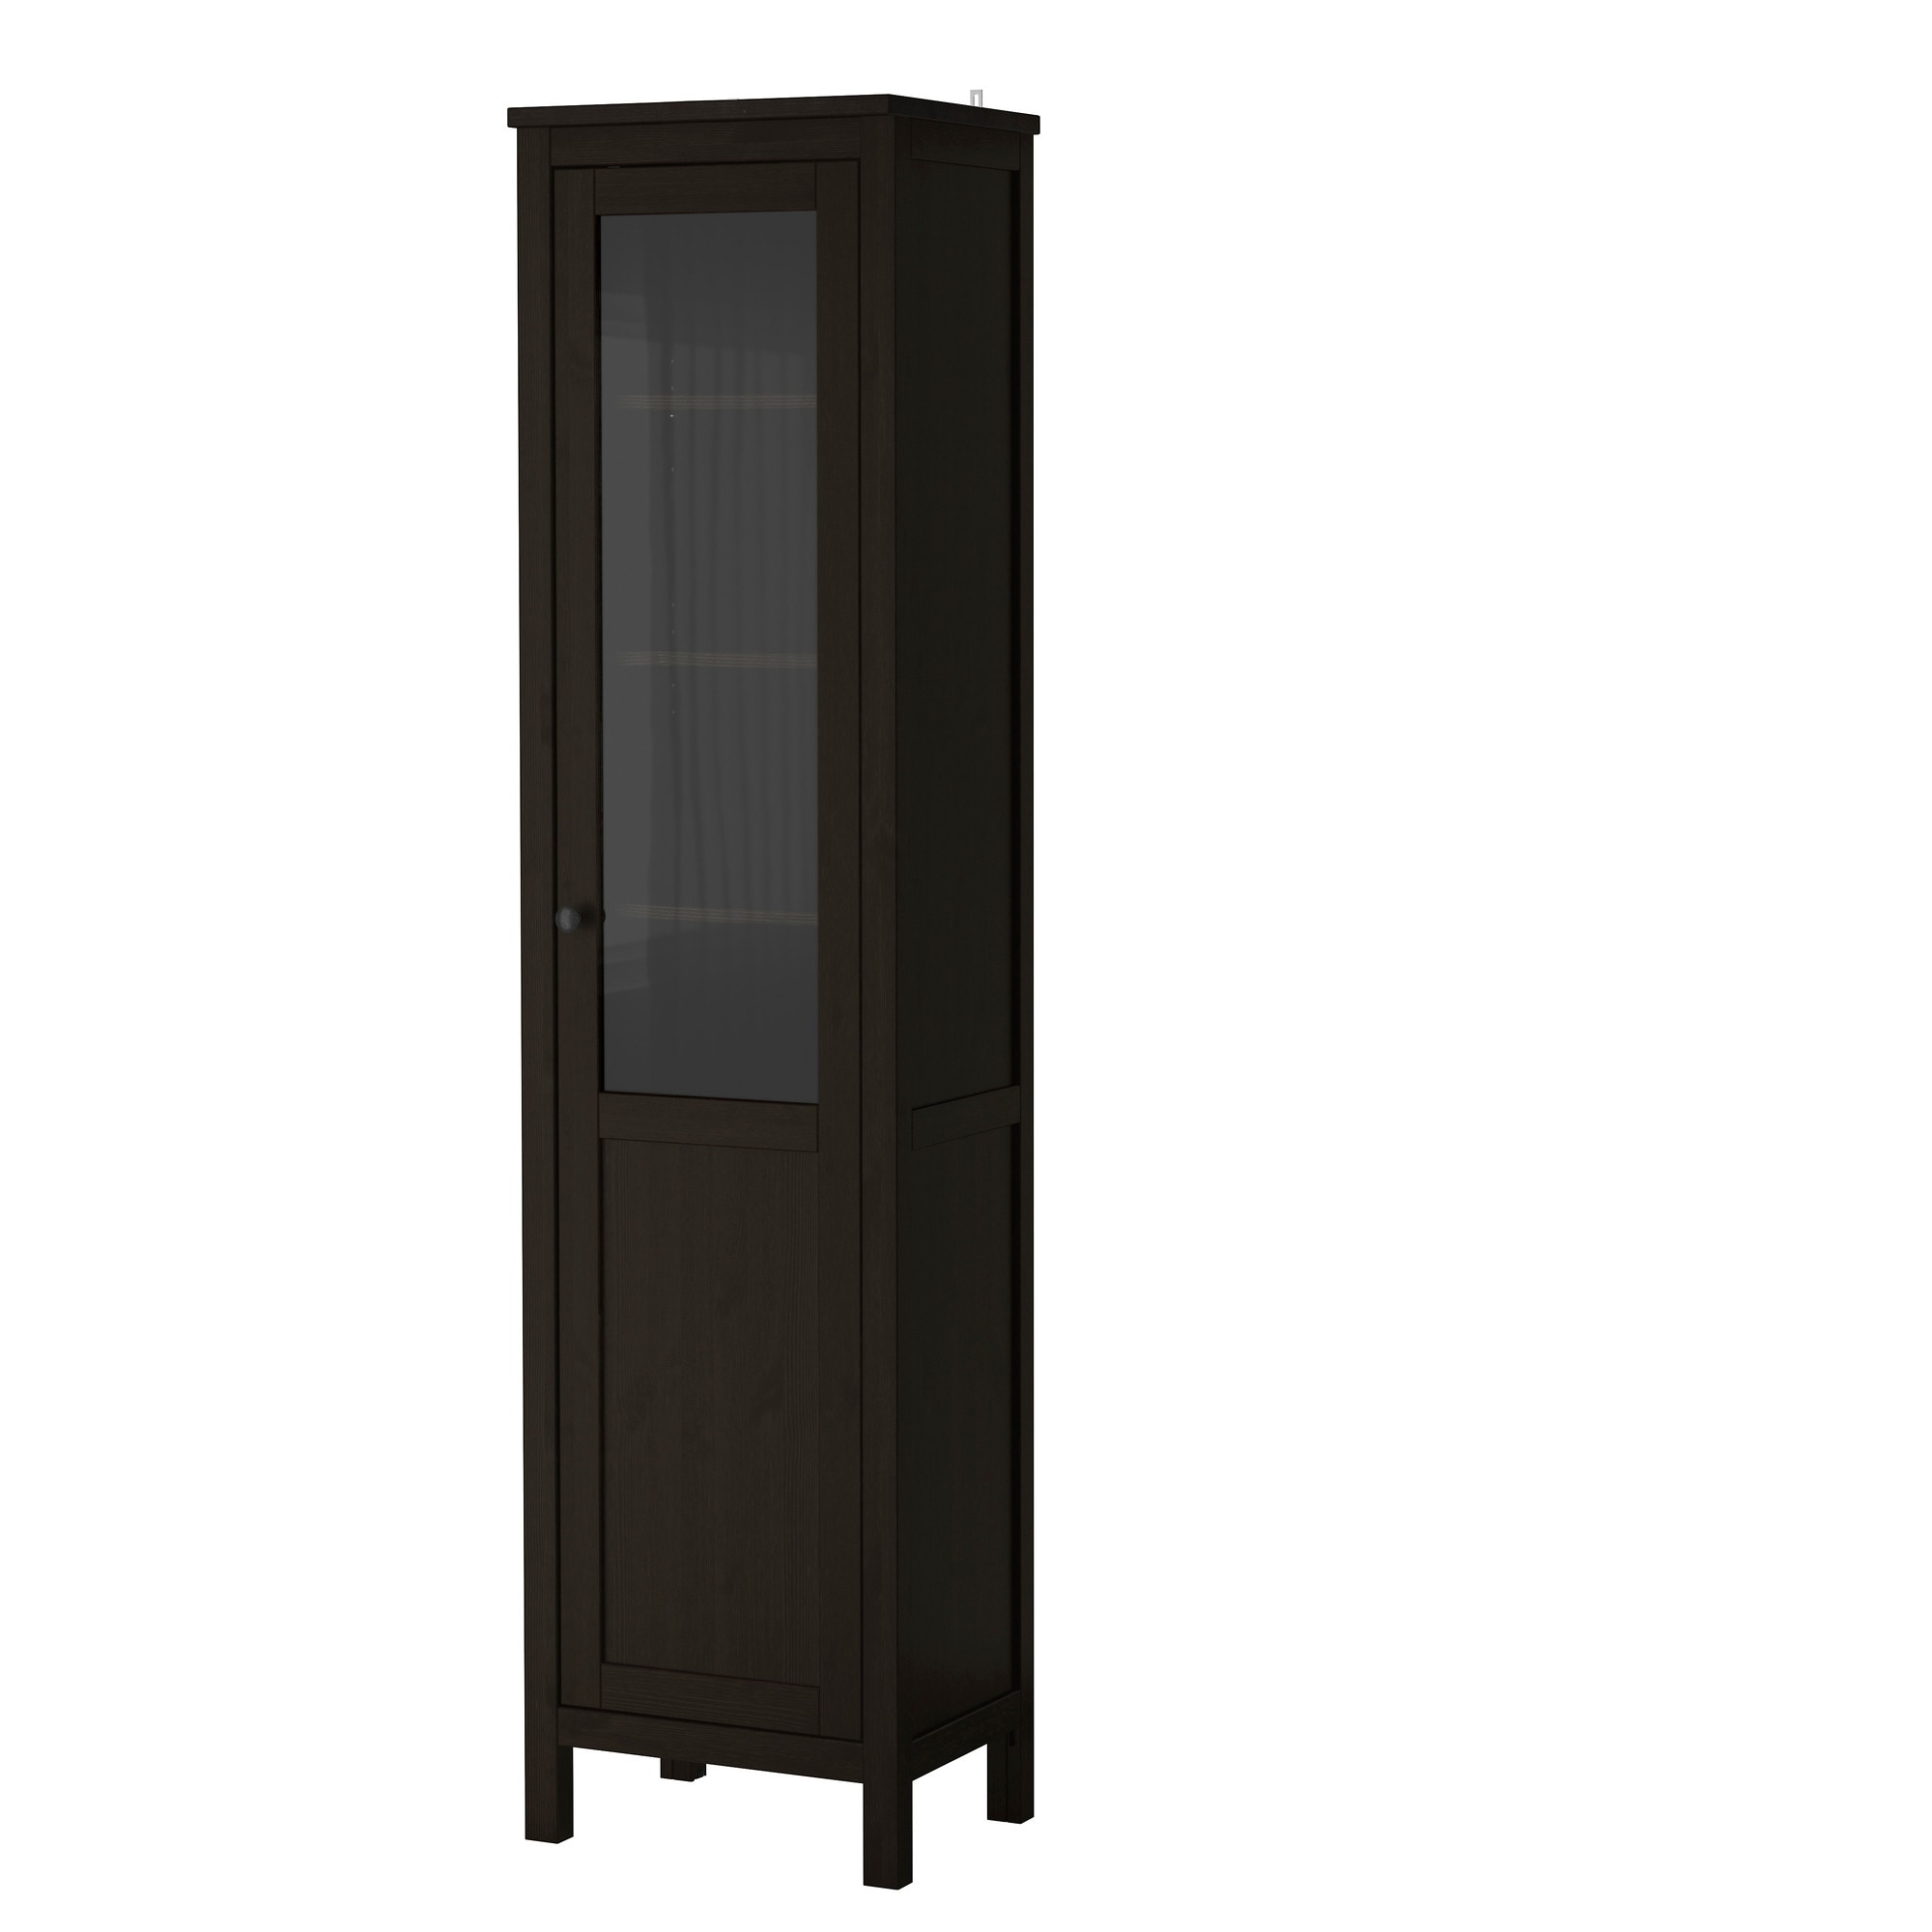 HEMNES cabinet with panel/glass door, black-brown Width: 19 1/